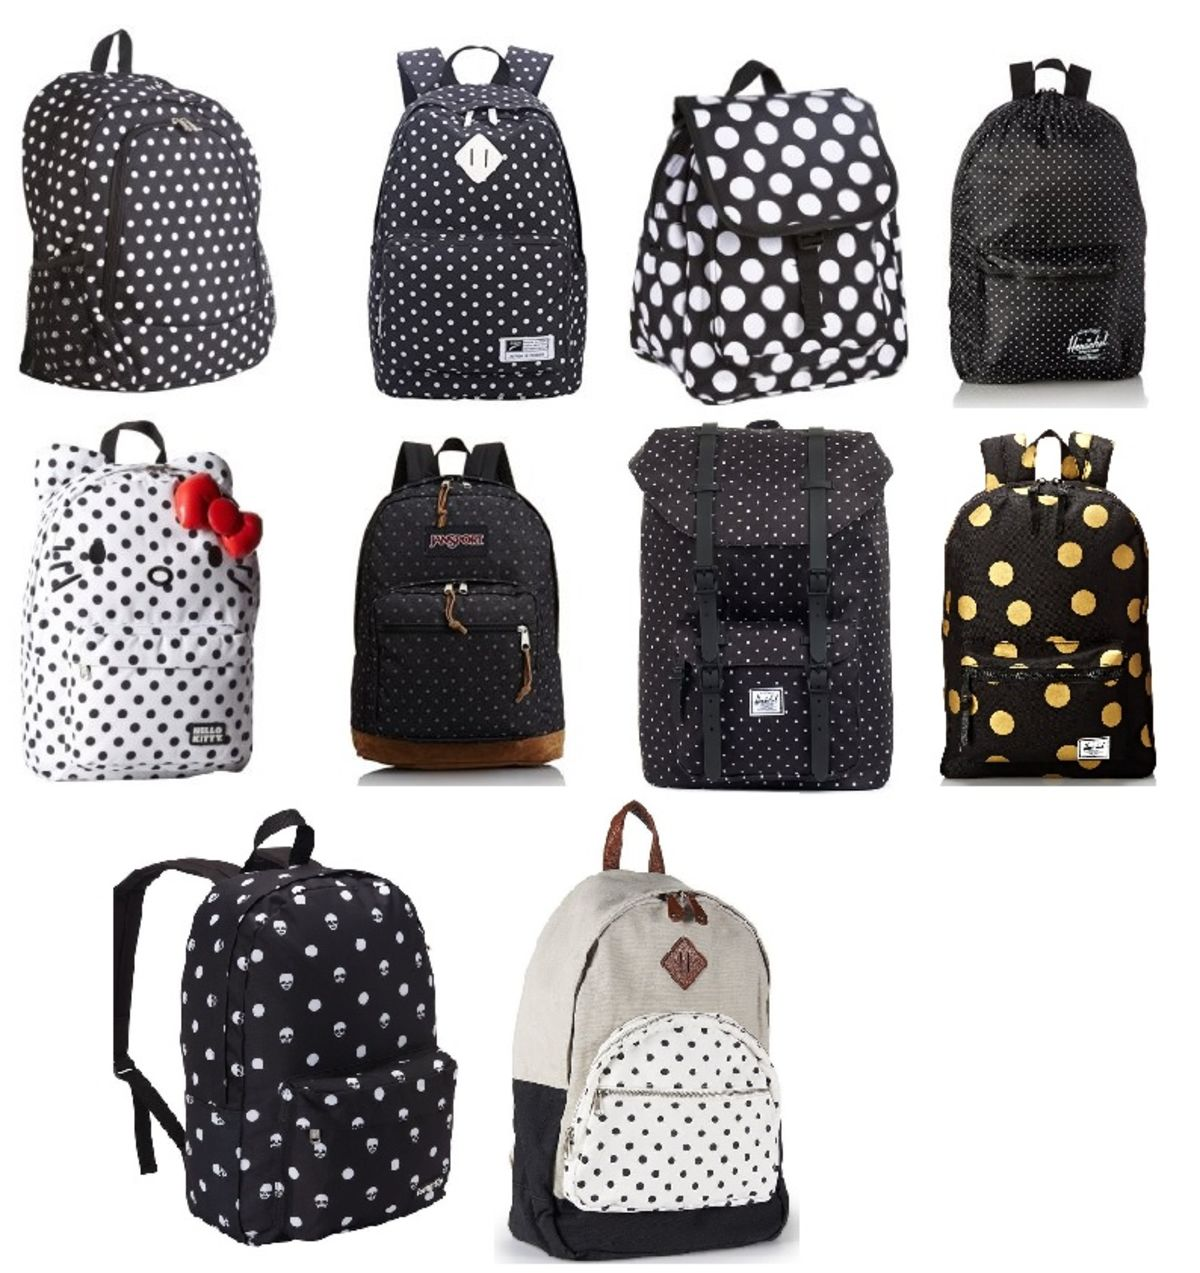 Headline for Best Black and White Polka Dot Backpacks for School and College